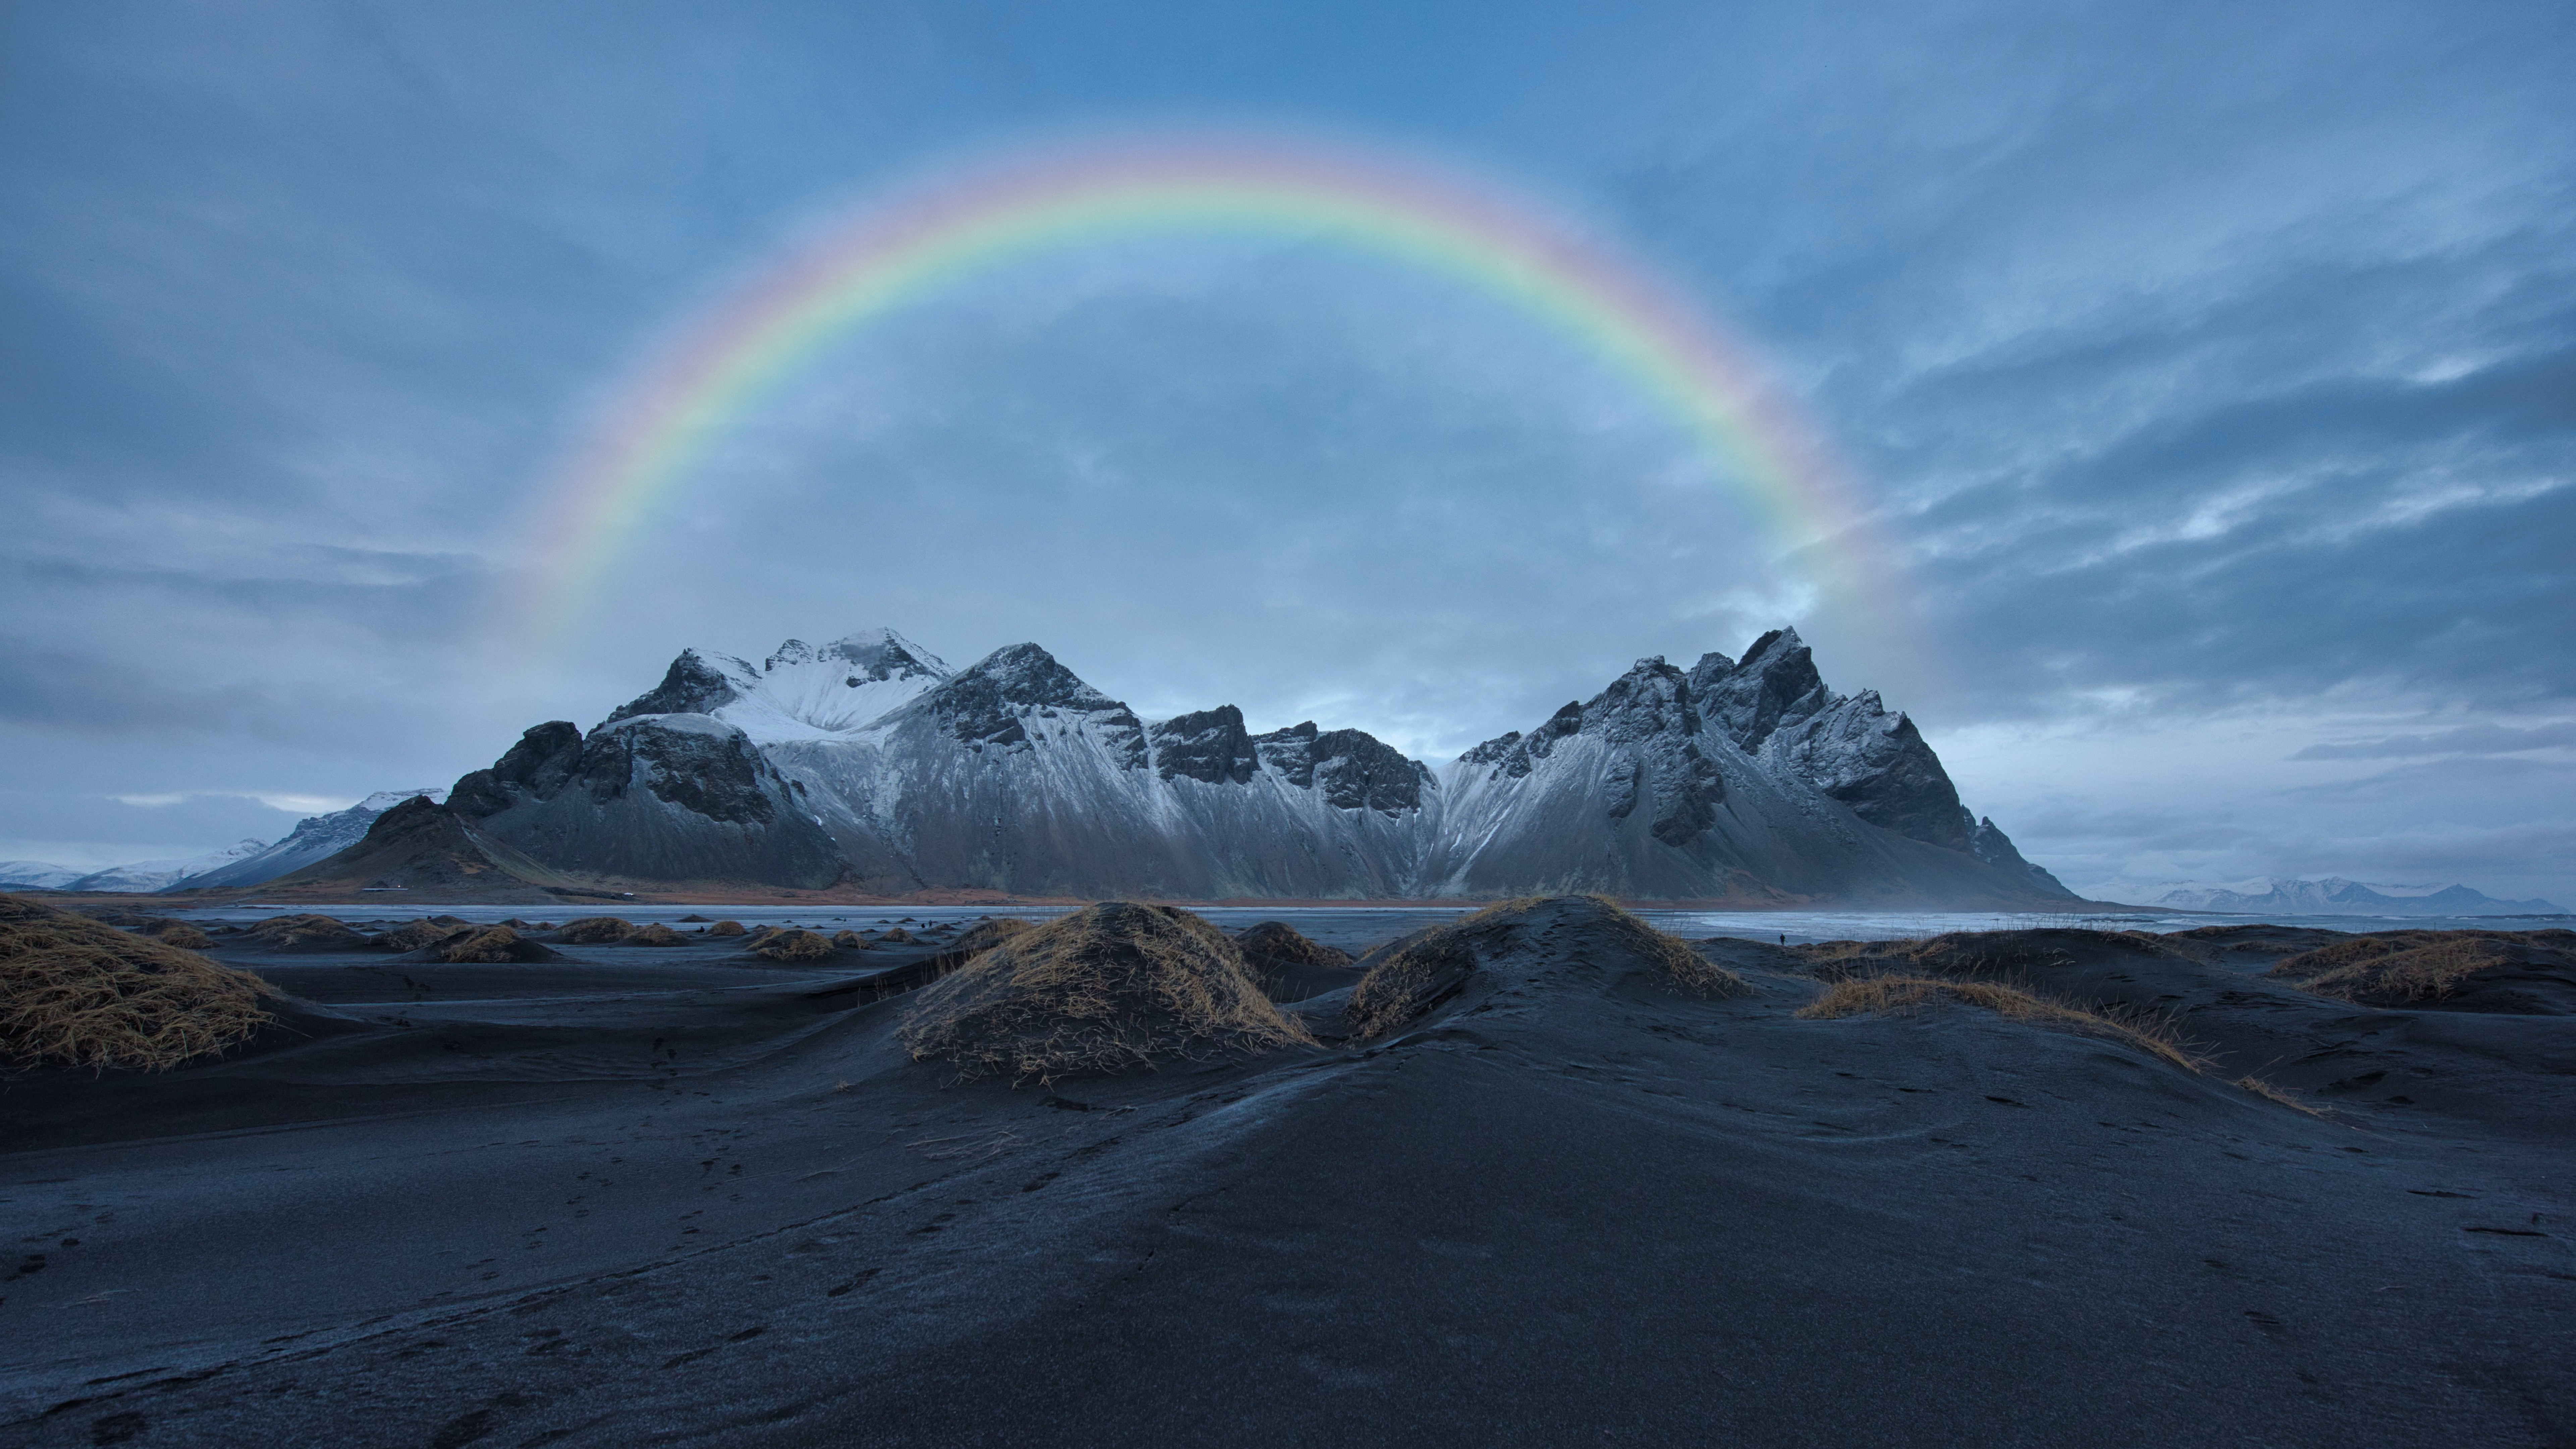 Rainbow Over Snow Covered Mountain 8k Ultra Hd Wallpaper Background Image 7680x4320 Id 1081214 Wallpaper Abyss